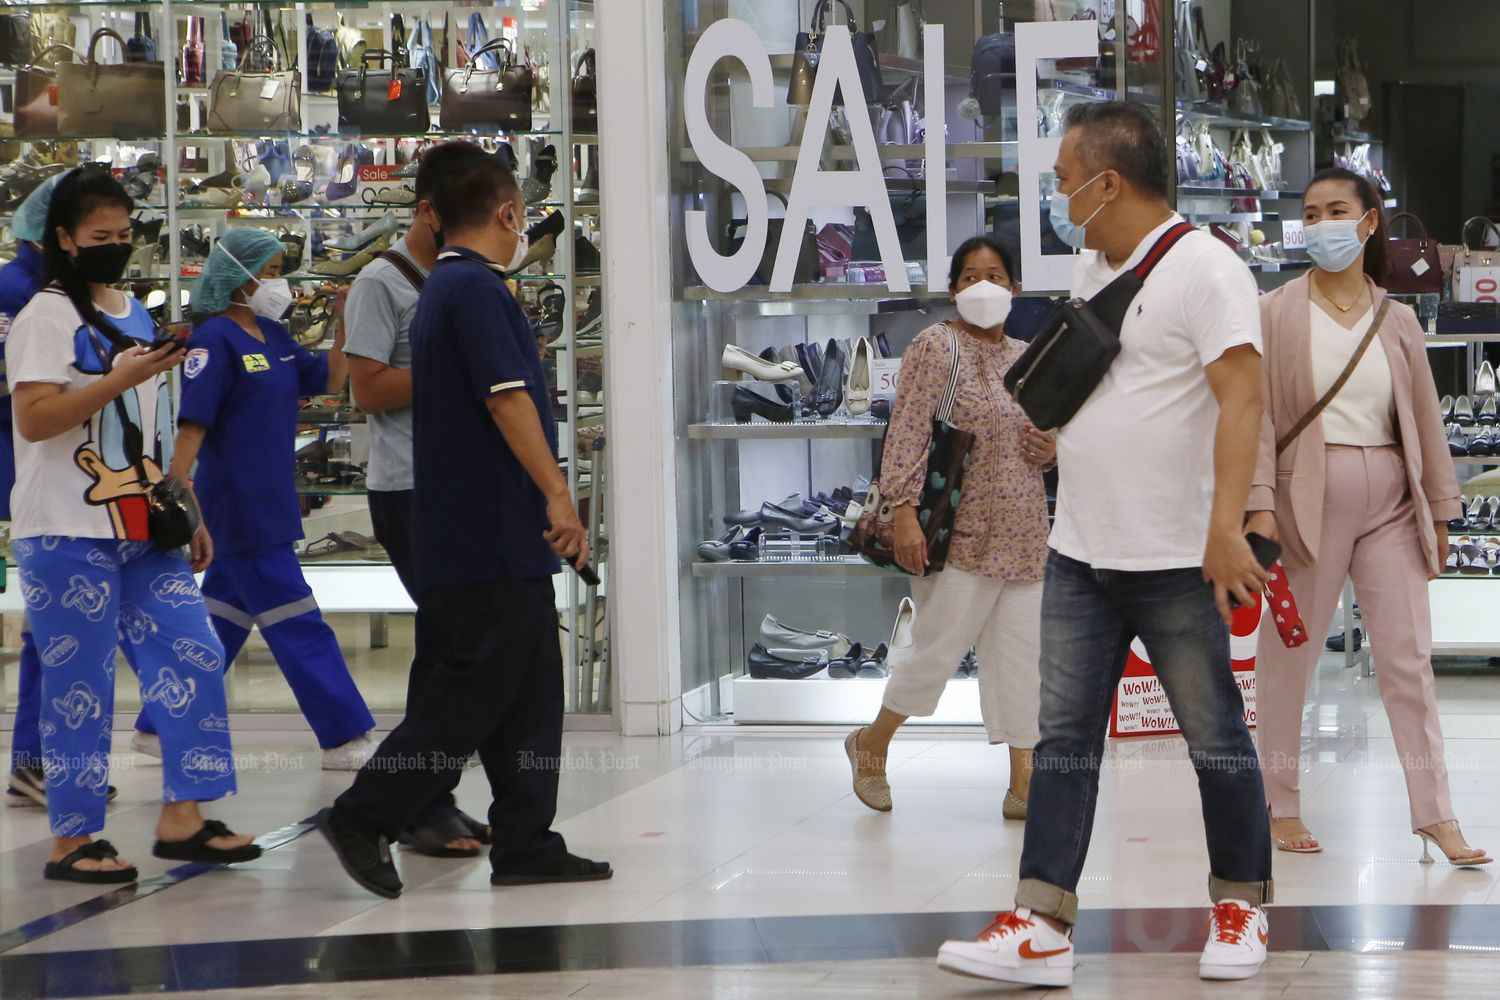 People shop at Future Park Rangsit mall in Pathum Thani province on Tuesday after Covid-19 restrictions were eased early this month. (Photo by Apichit Jinakul)